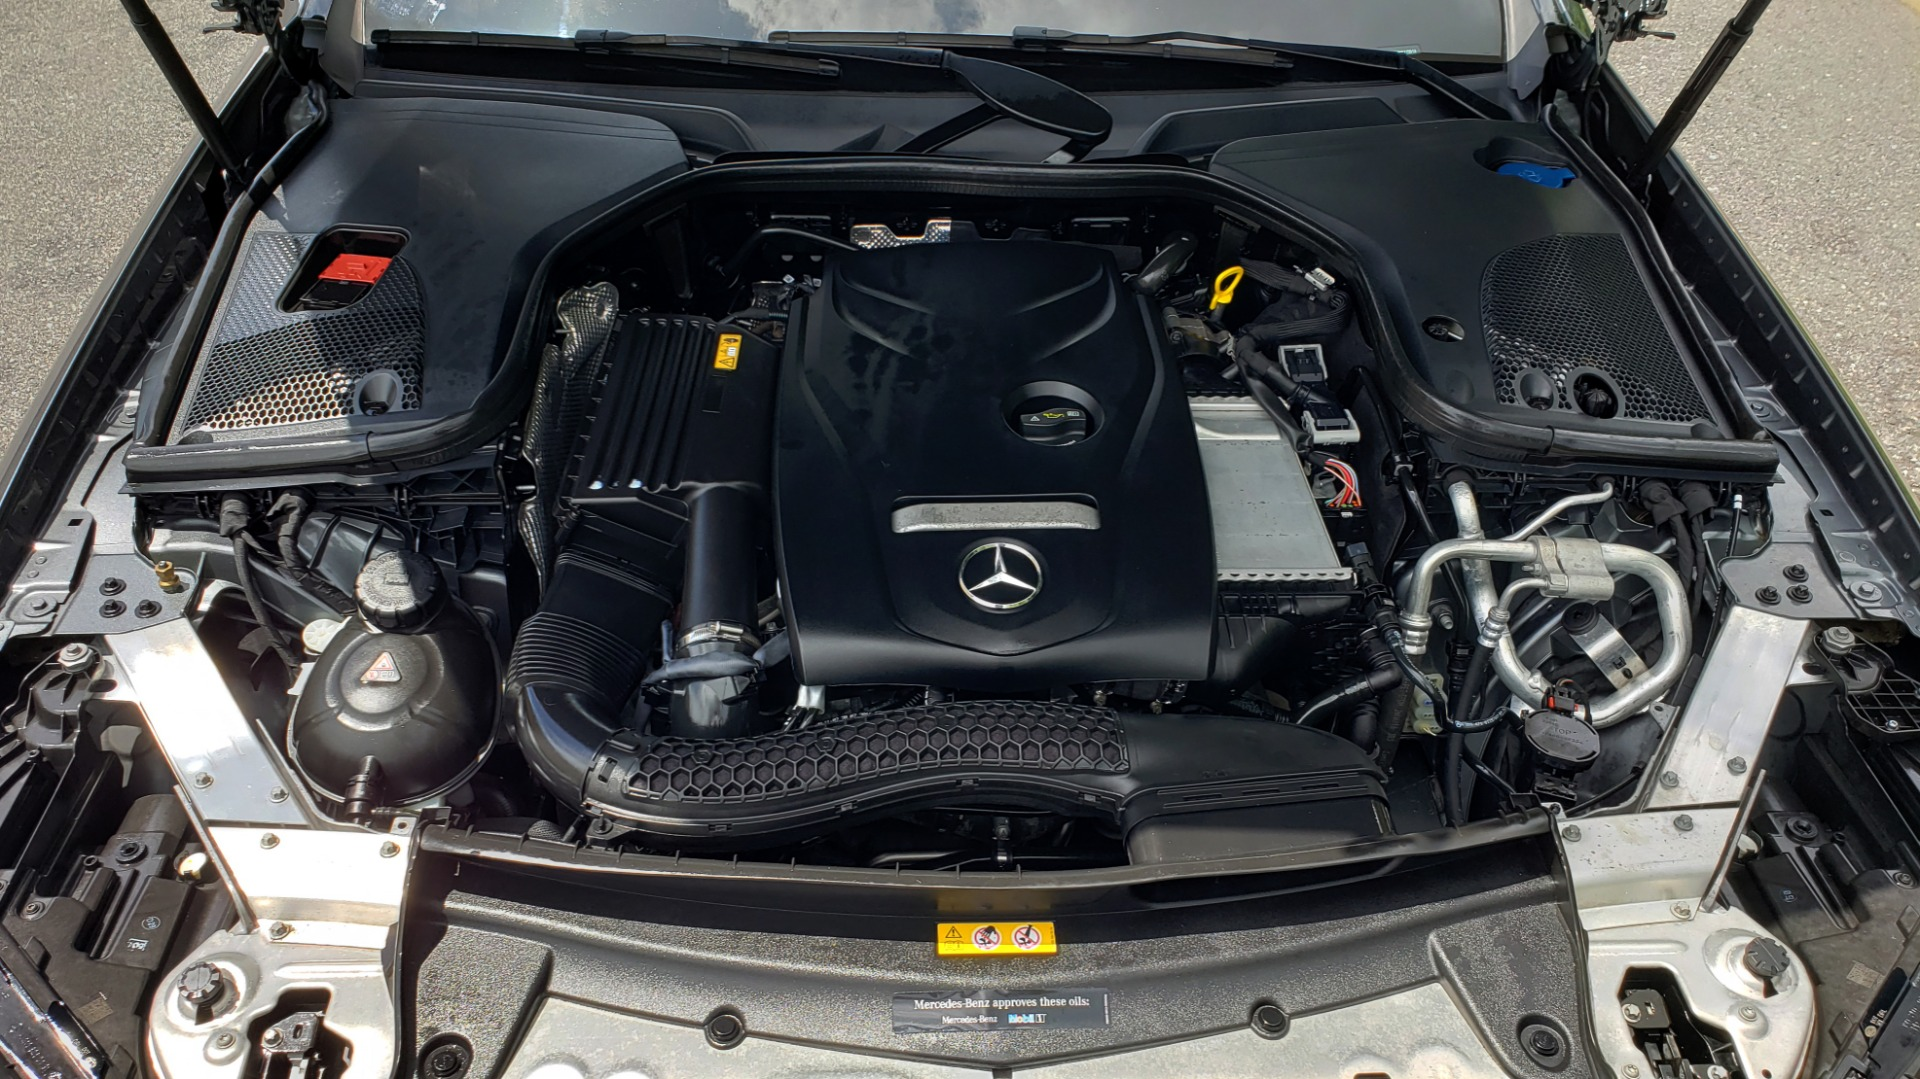 Used 2017 Mercedes-Benz E-CLASS E 300 SPORT 4MATIC / PREM PKG / NAV / SUNROOF / BURMESTER SND / REARVIEW for sale Sold at Formula Imports in Charlotte NC 28227 10